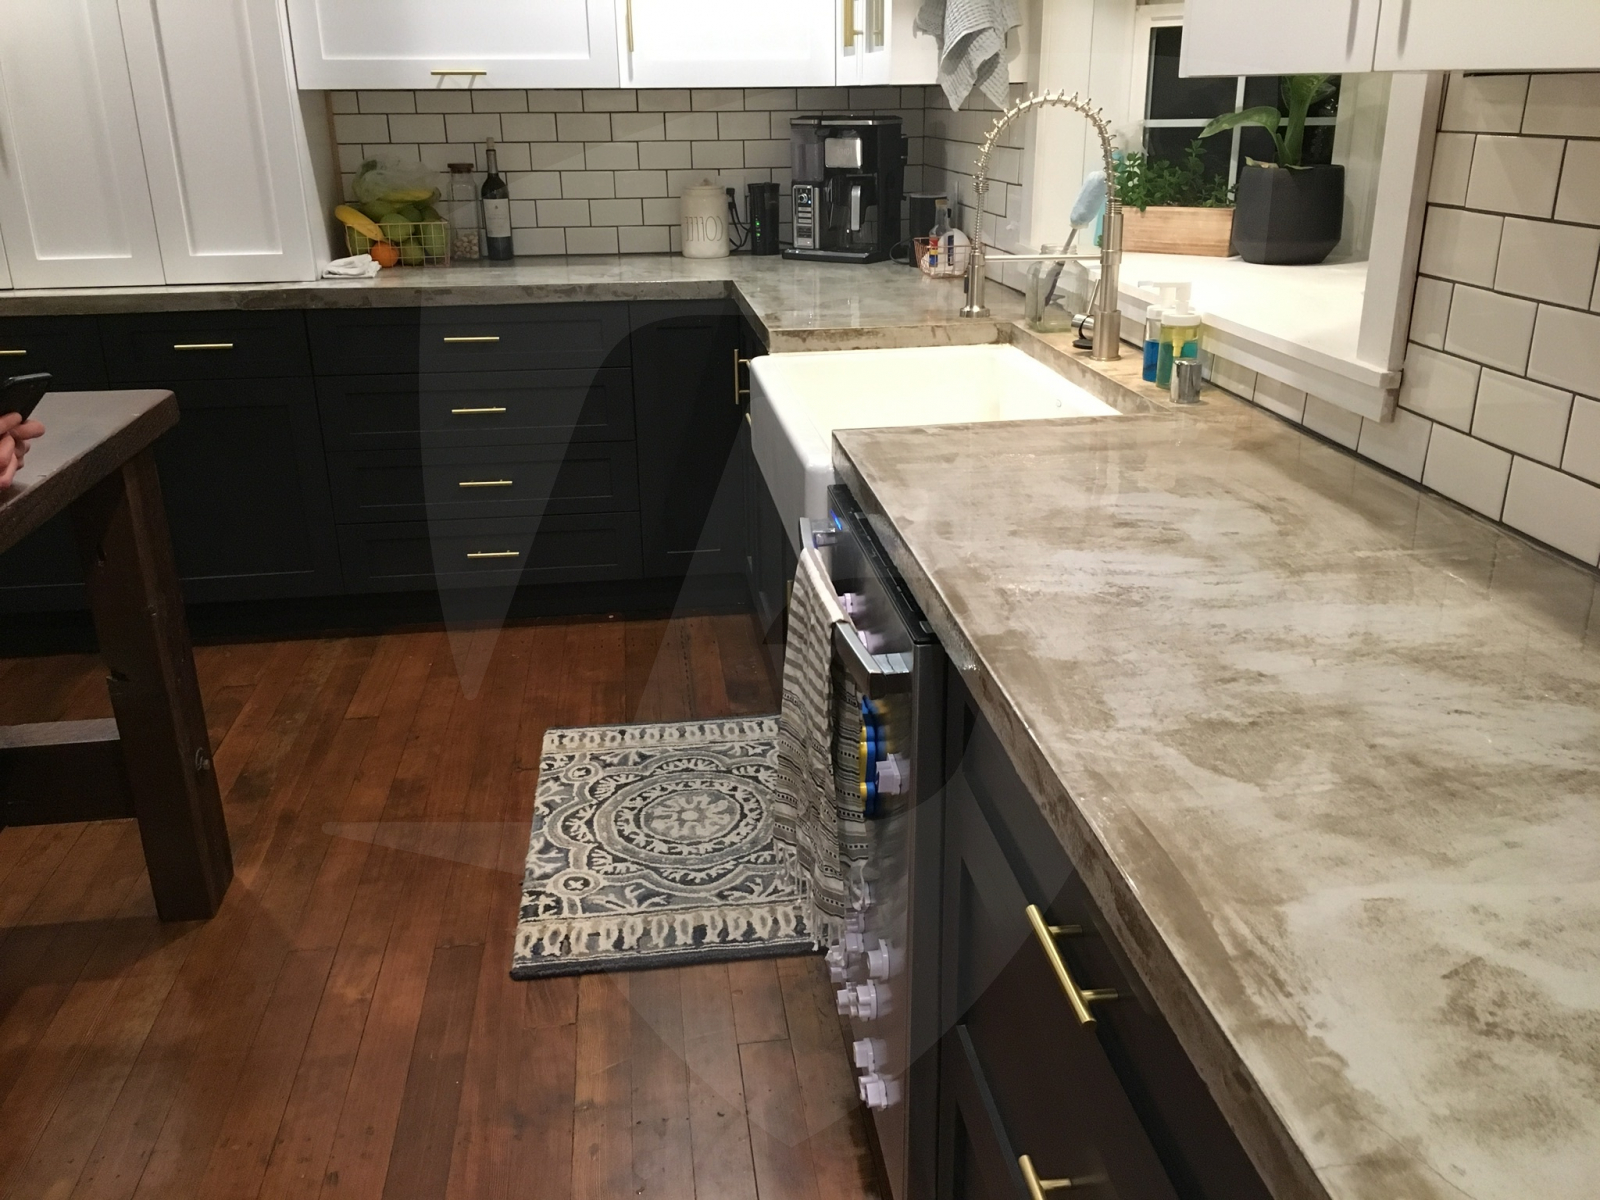 How To Protect Concrete Countertops Ghostshield Concrete Sealers